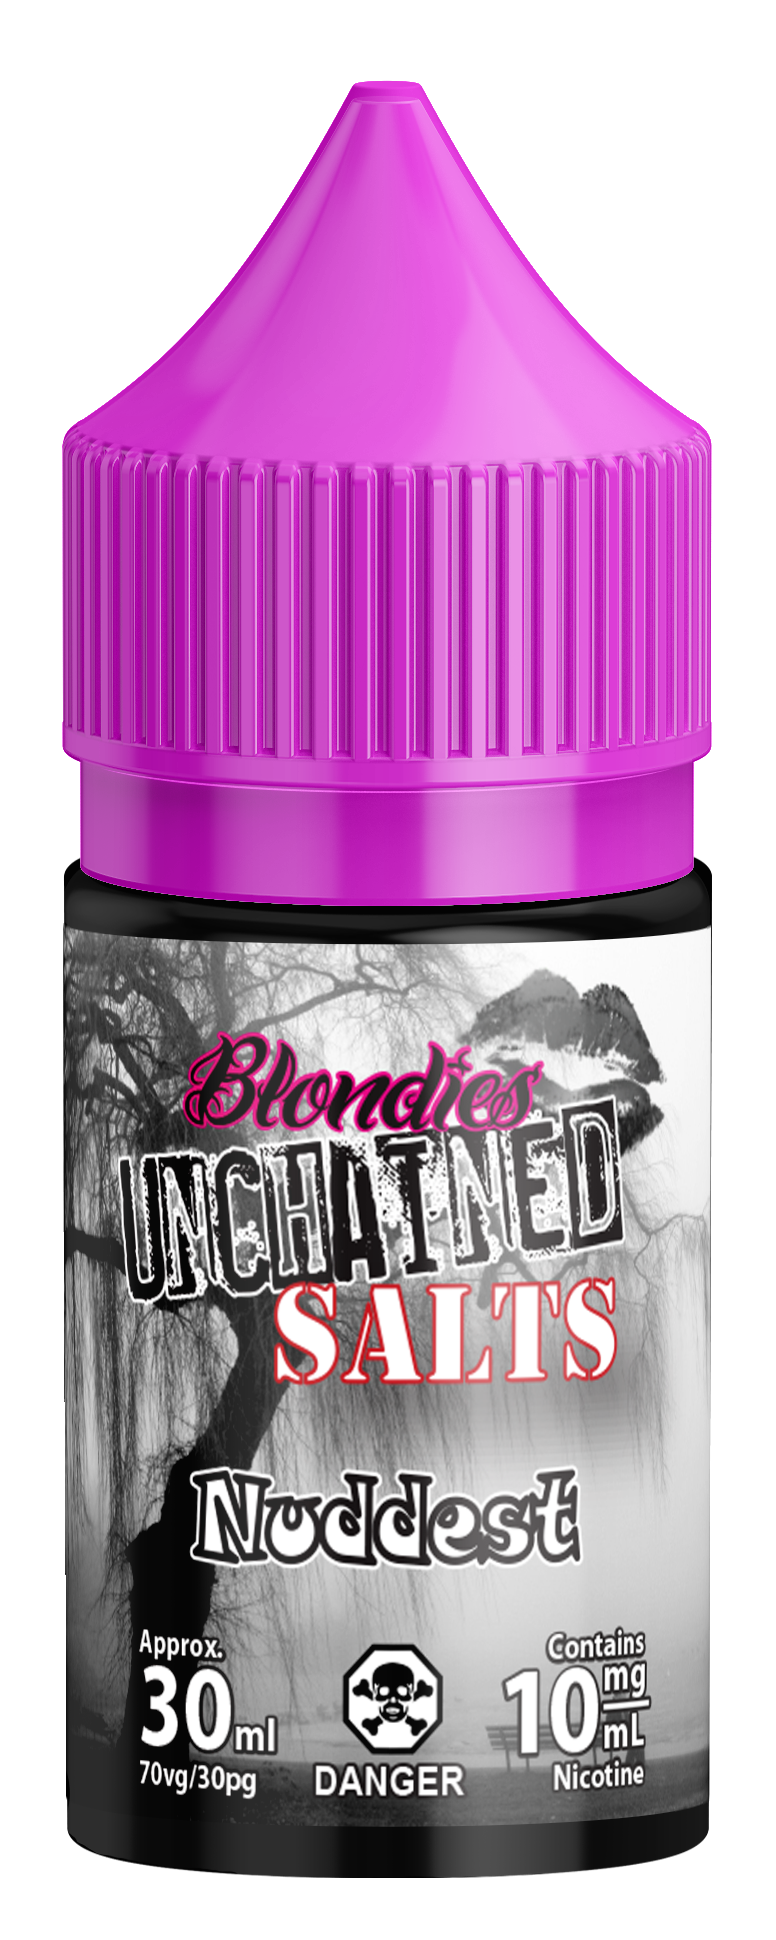 Unchained Salts Nuddest